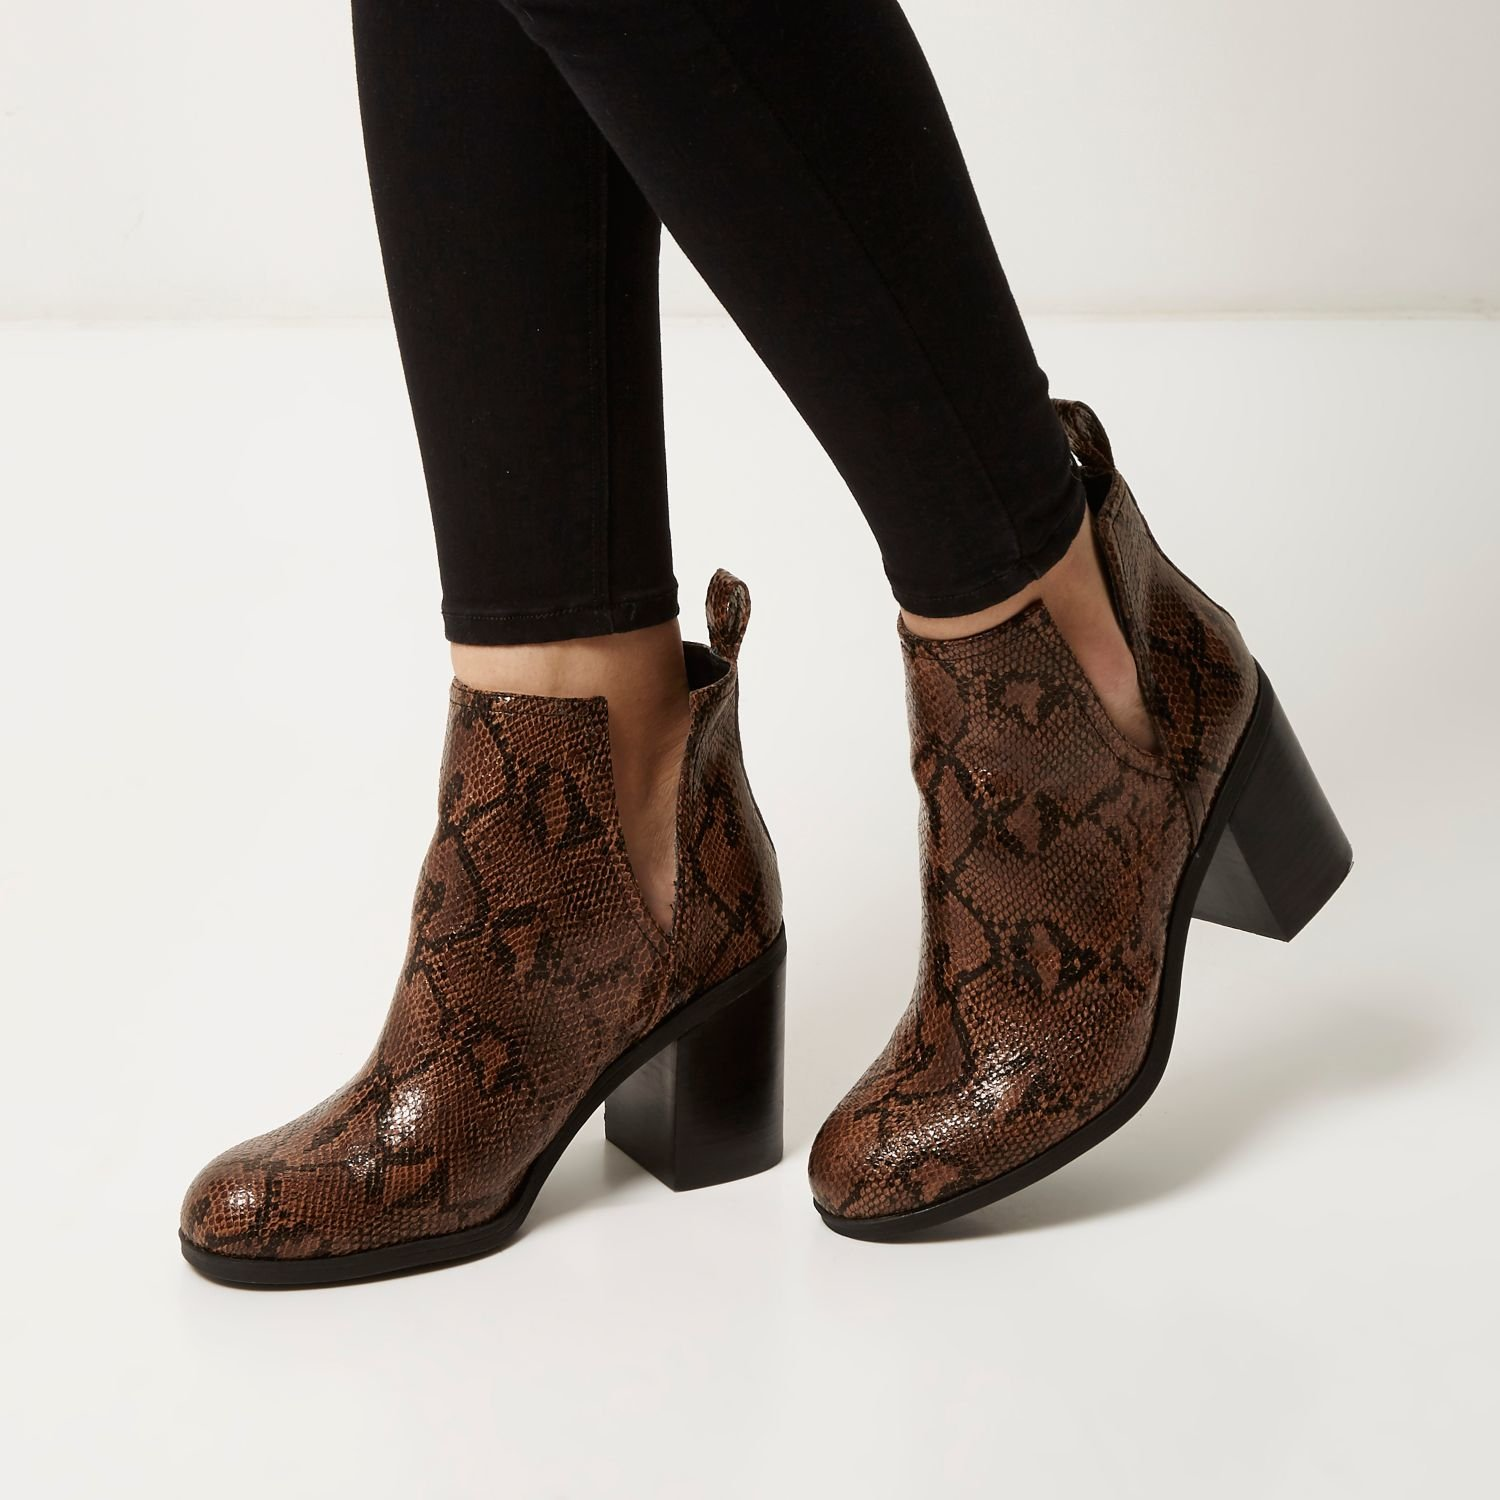 River Island Ankle Boots Snakeskin